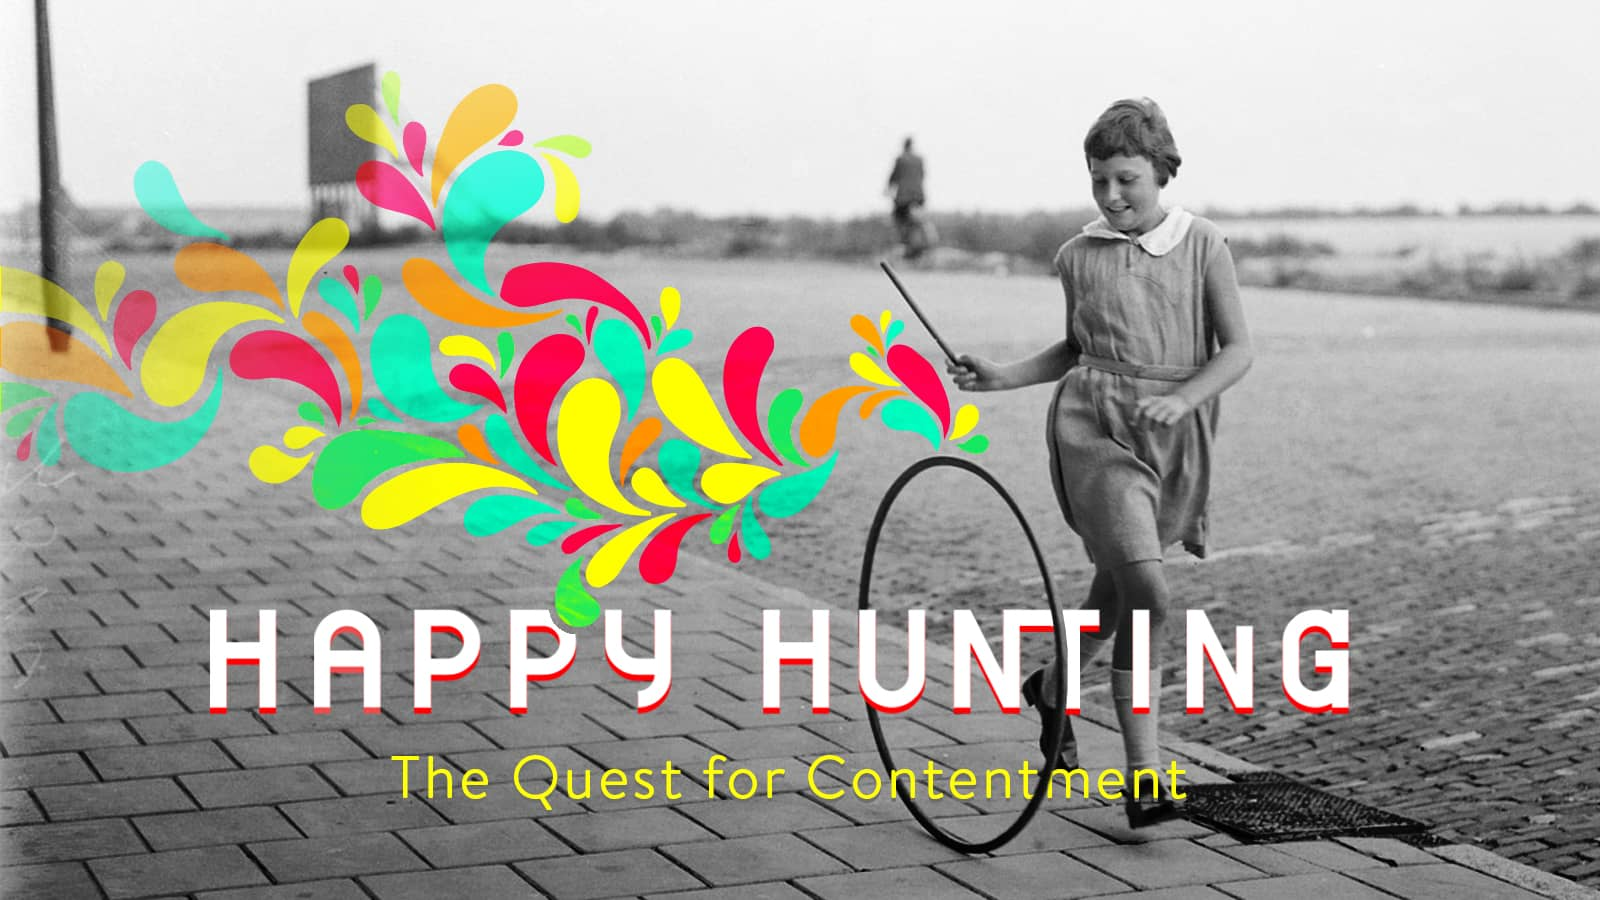 Happy hunting the quest for contentment church sermon series ideas from ccuart Image collections